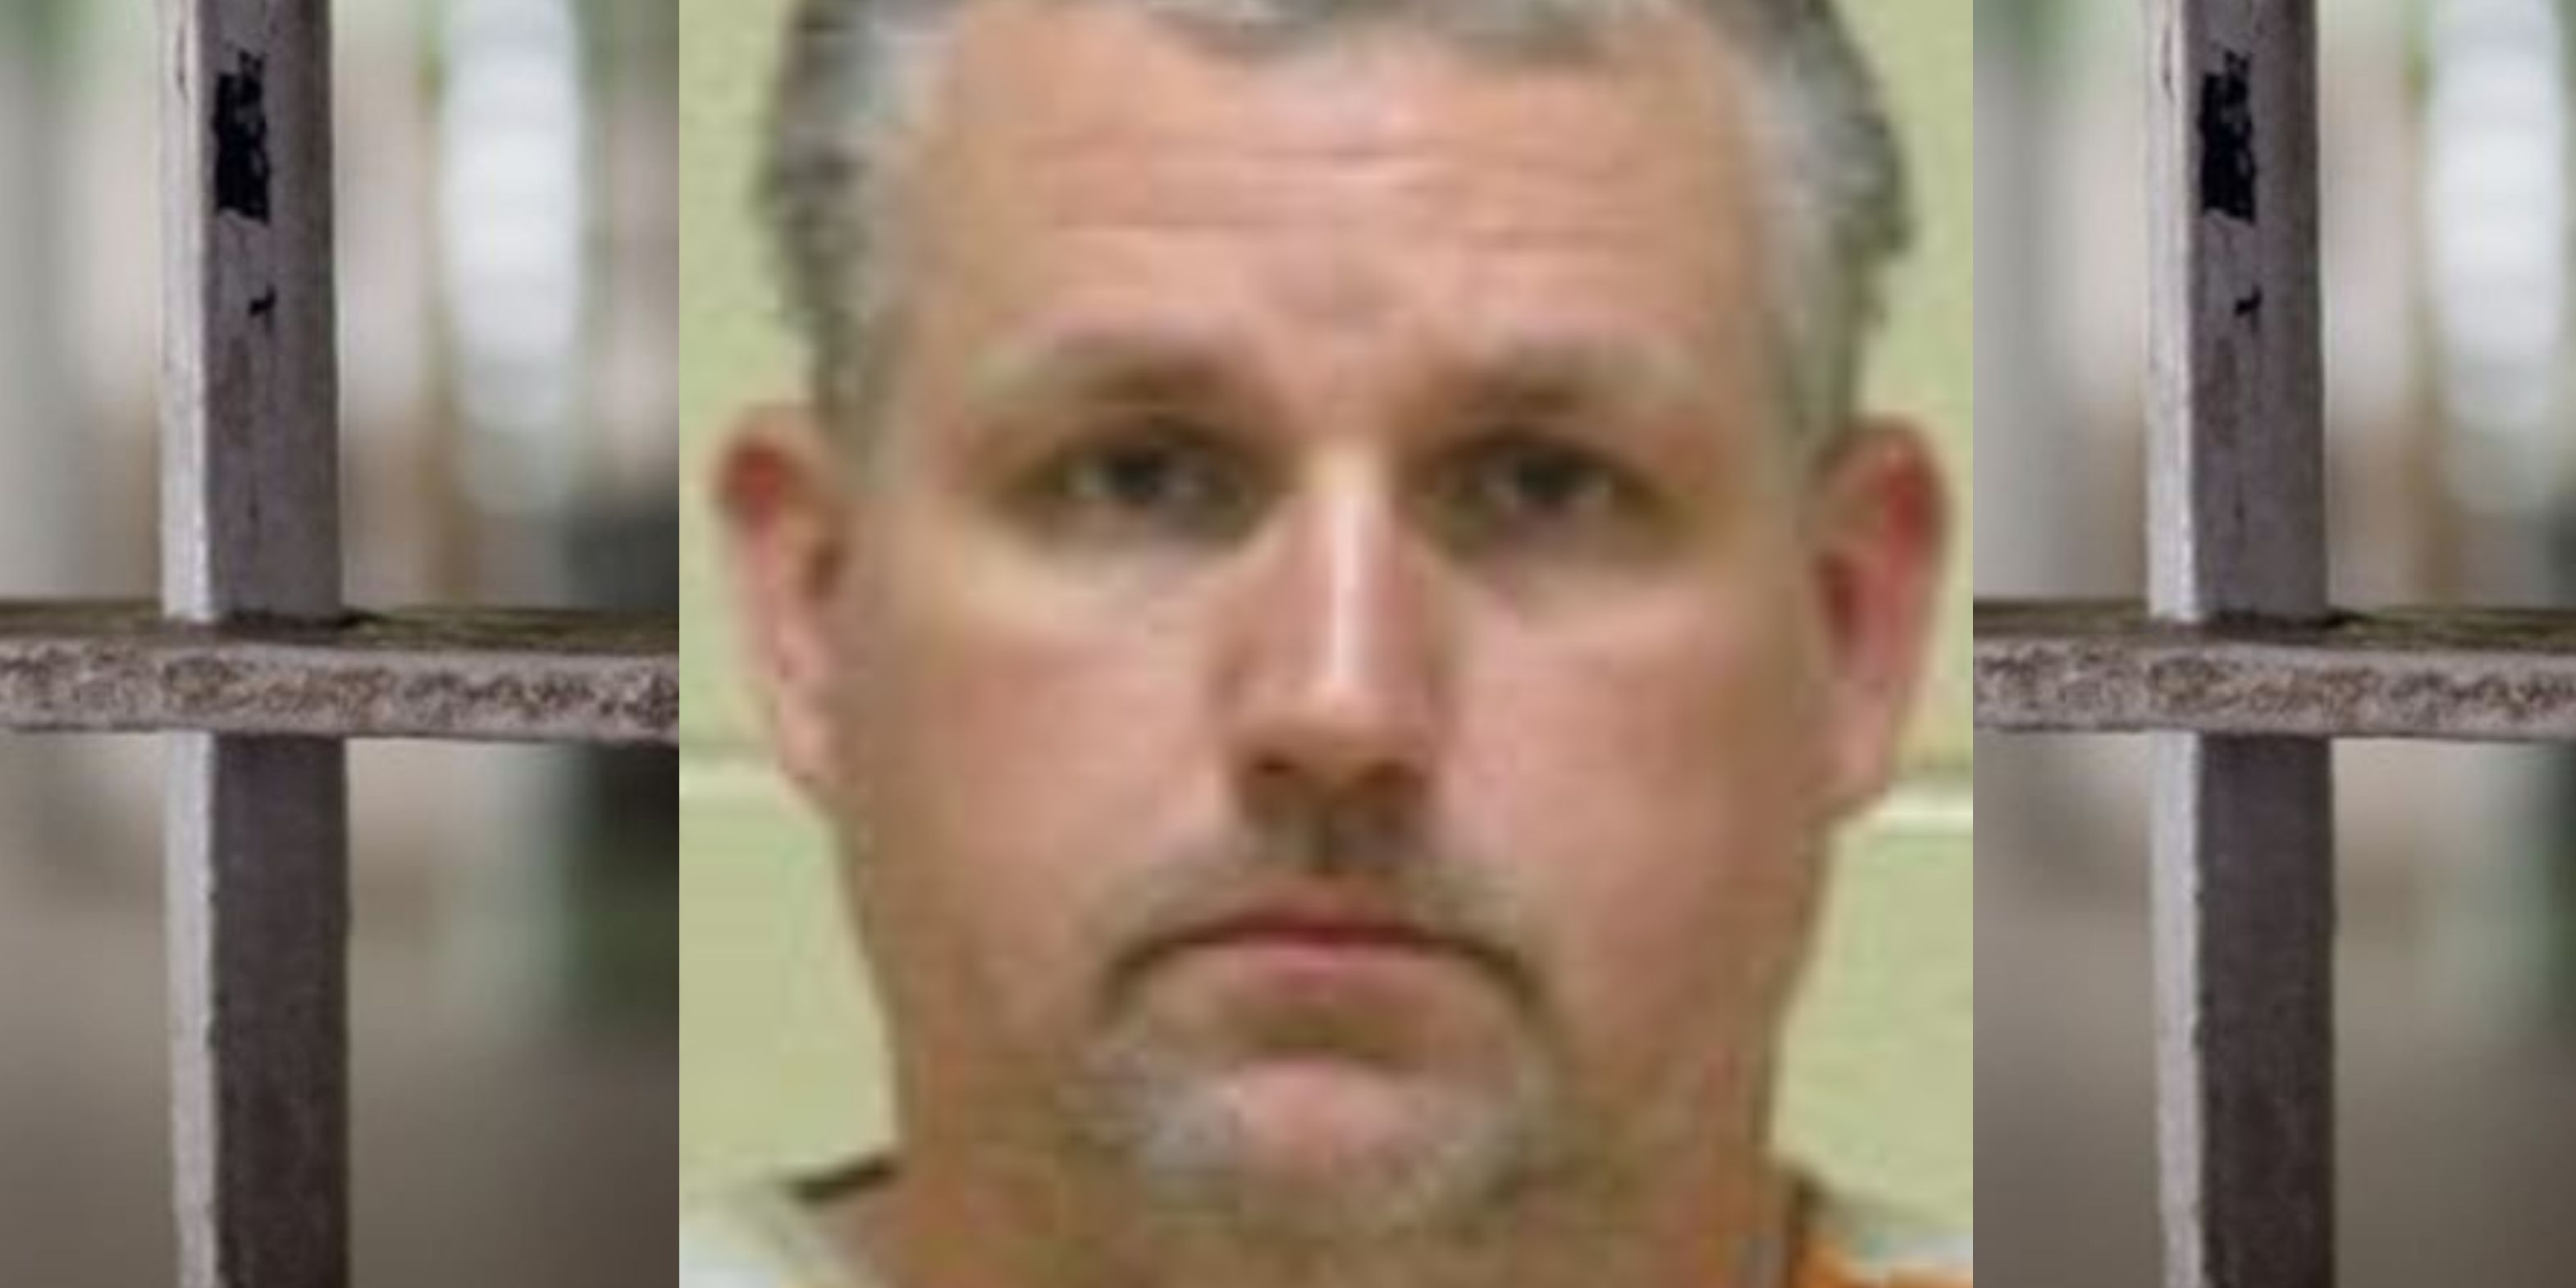 New molestation charges filed against former Bossier teacher/coach